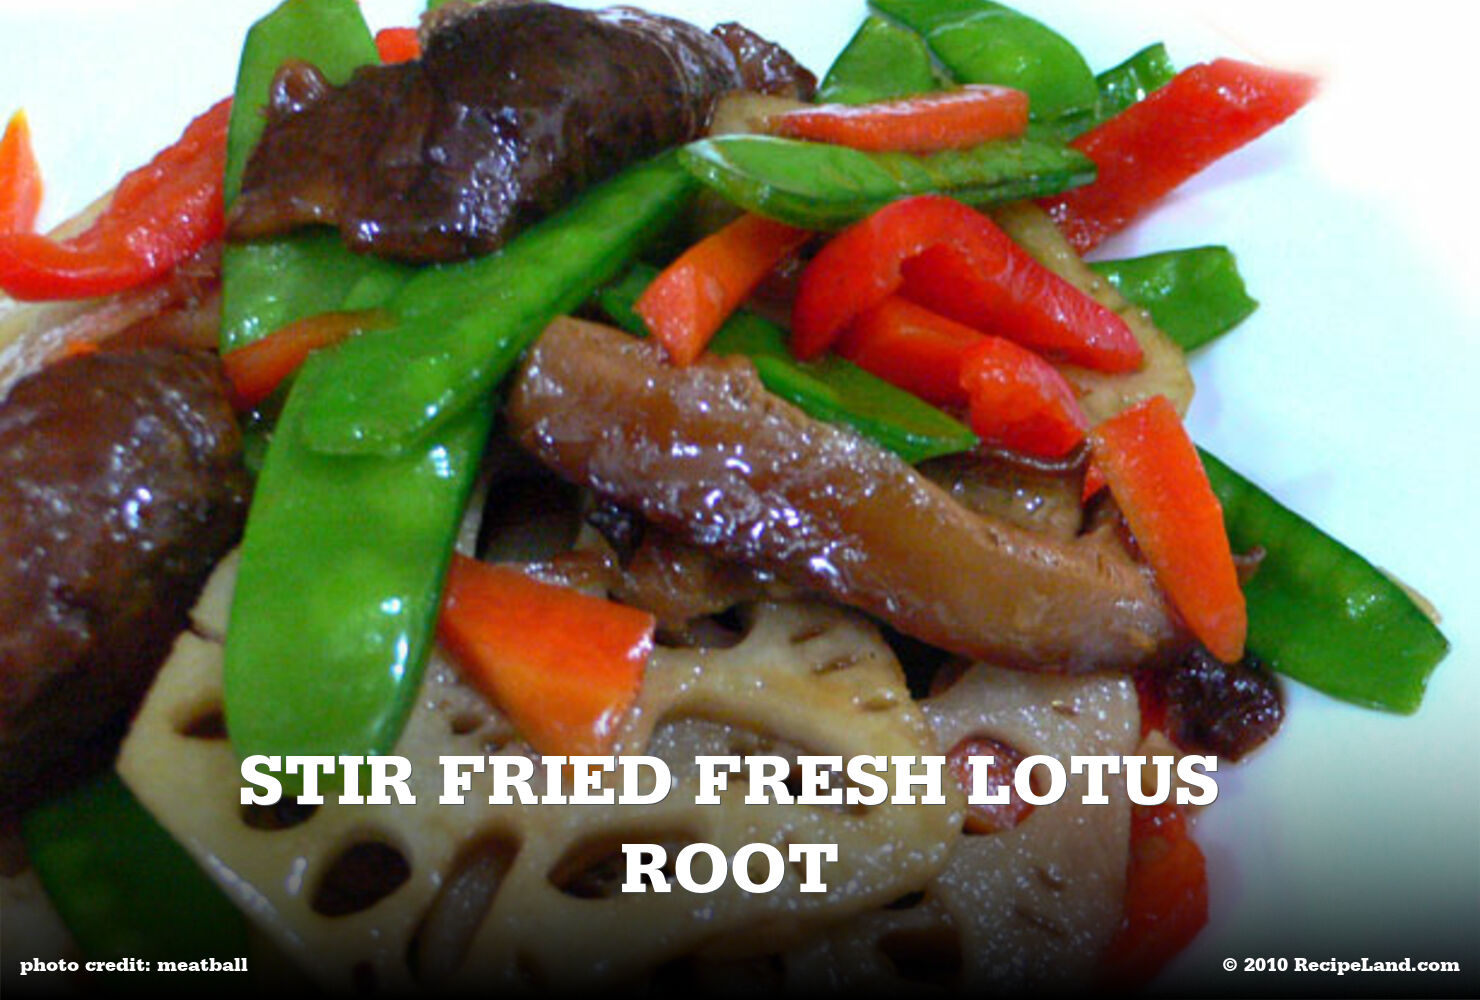 Stir Fried Fresh Lotus Root